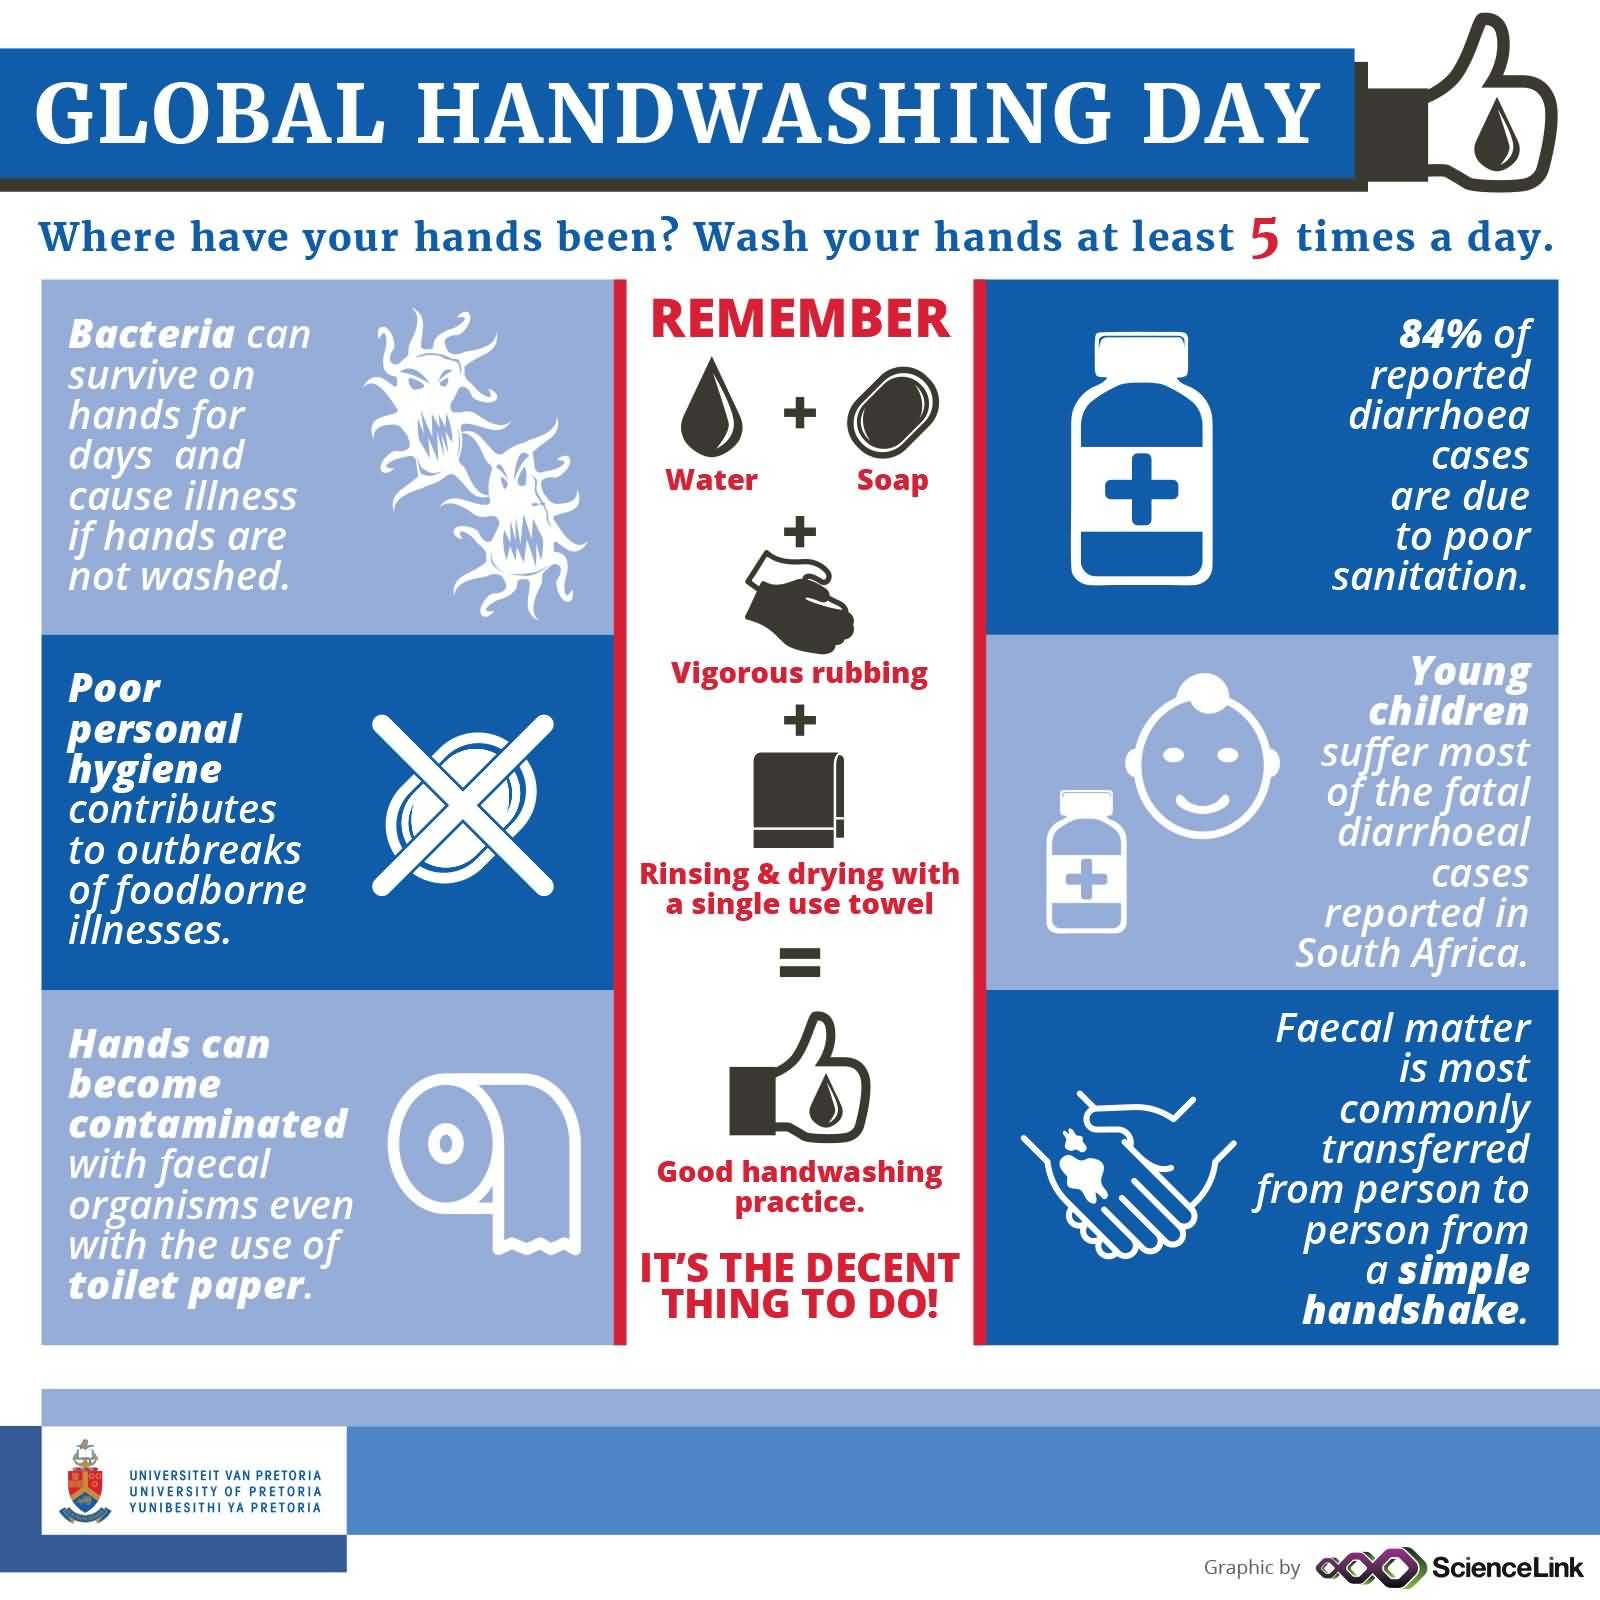 research paper on handwashing Guidelines for good handwashing essays: over 180,000 guidelines for good handwashing essays, guidelines for good handwashing term papers, guidelines for good handwashing research paper, book reports 184 990 essays, term and research papers available for unlimited access.